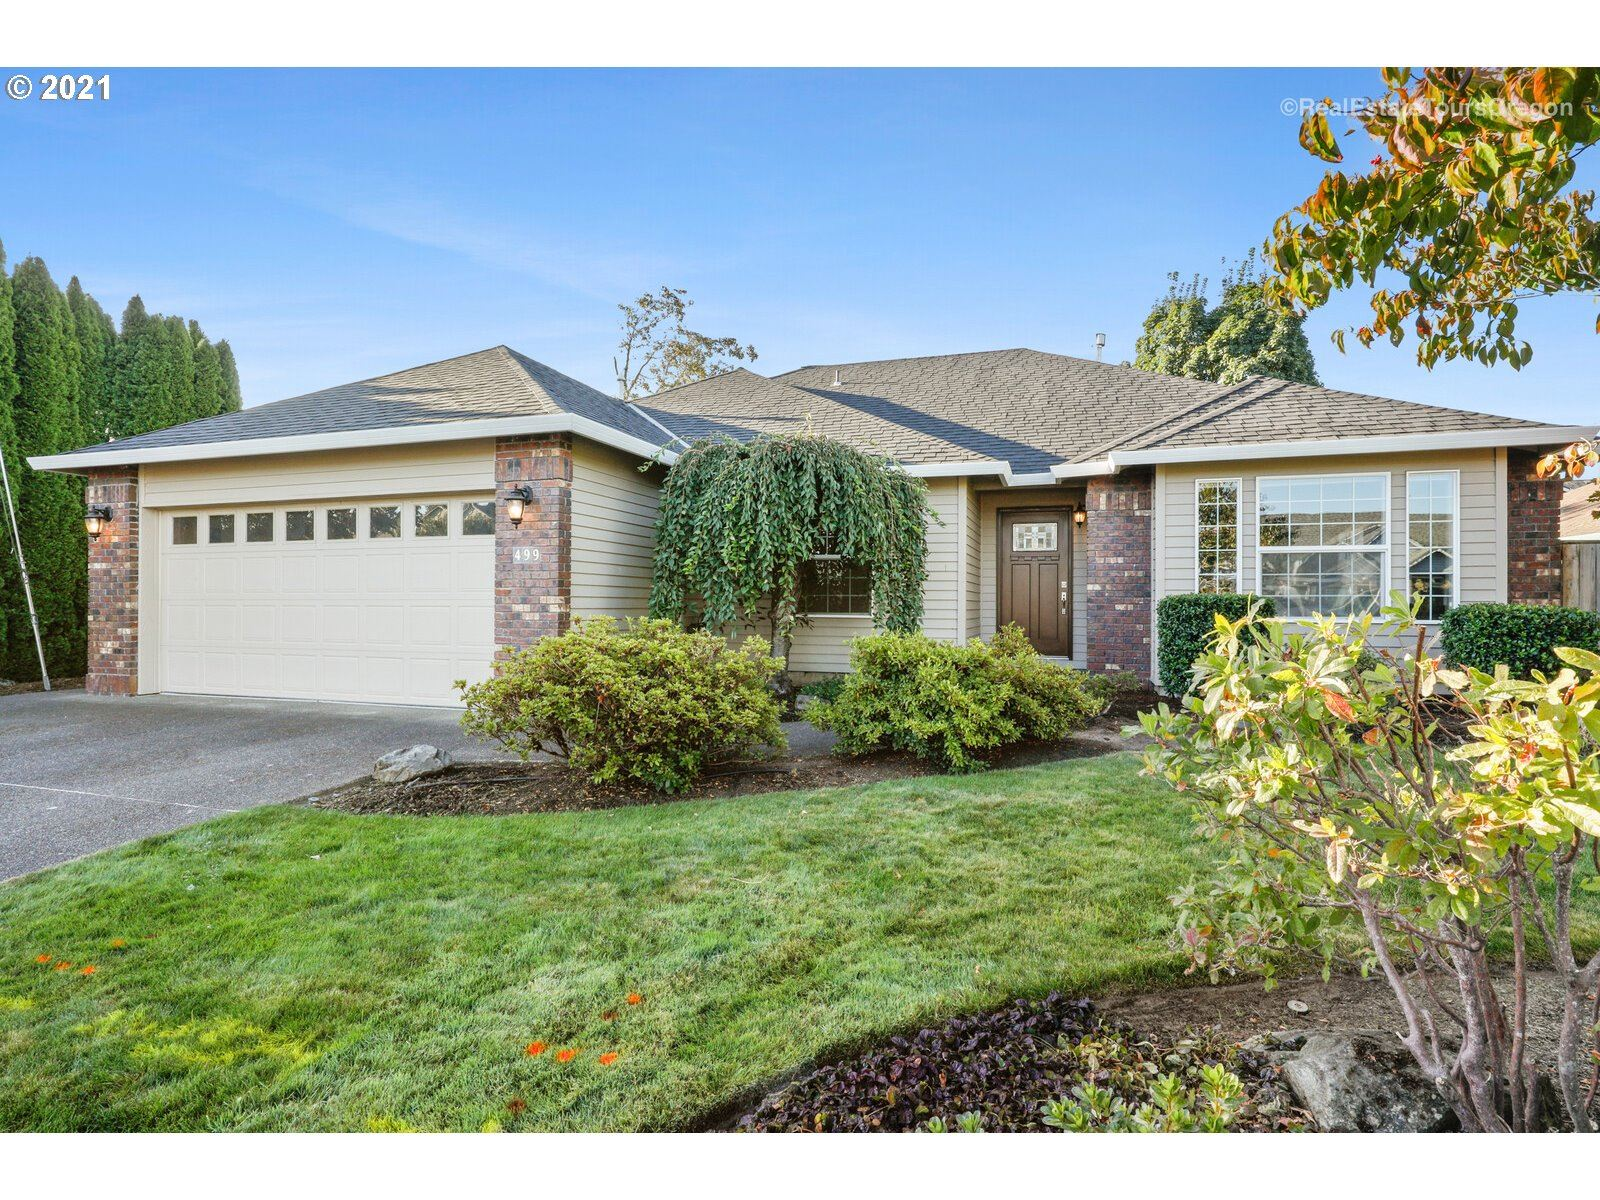 499 SE 8TH AVE, Canby, OR 97013 - MLS#: 21534366